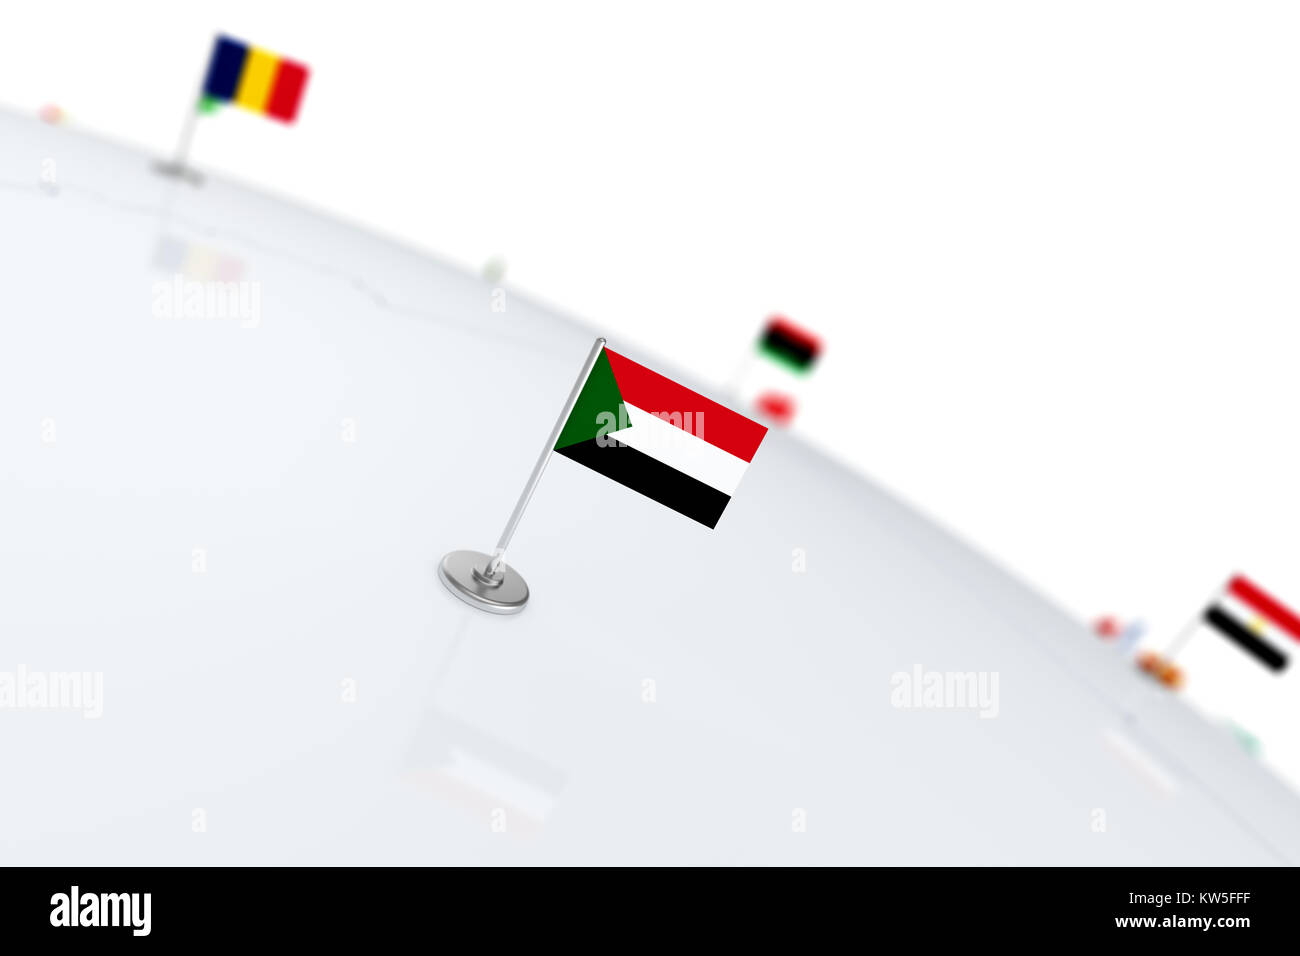 Sudan flag country flag with chrome flagpole on the world map with sudan flag country flag with chrome flagpole on the world map with neighbors countries borders 3d illustration rendering flag gumiabroncs Choice Image